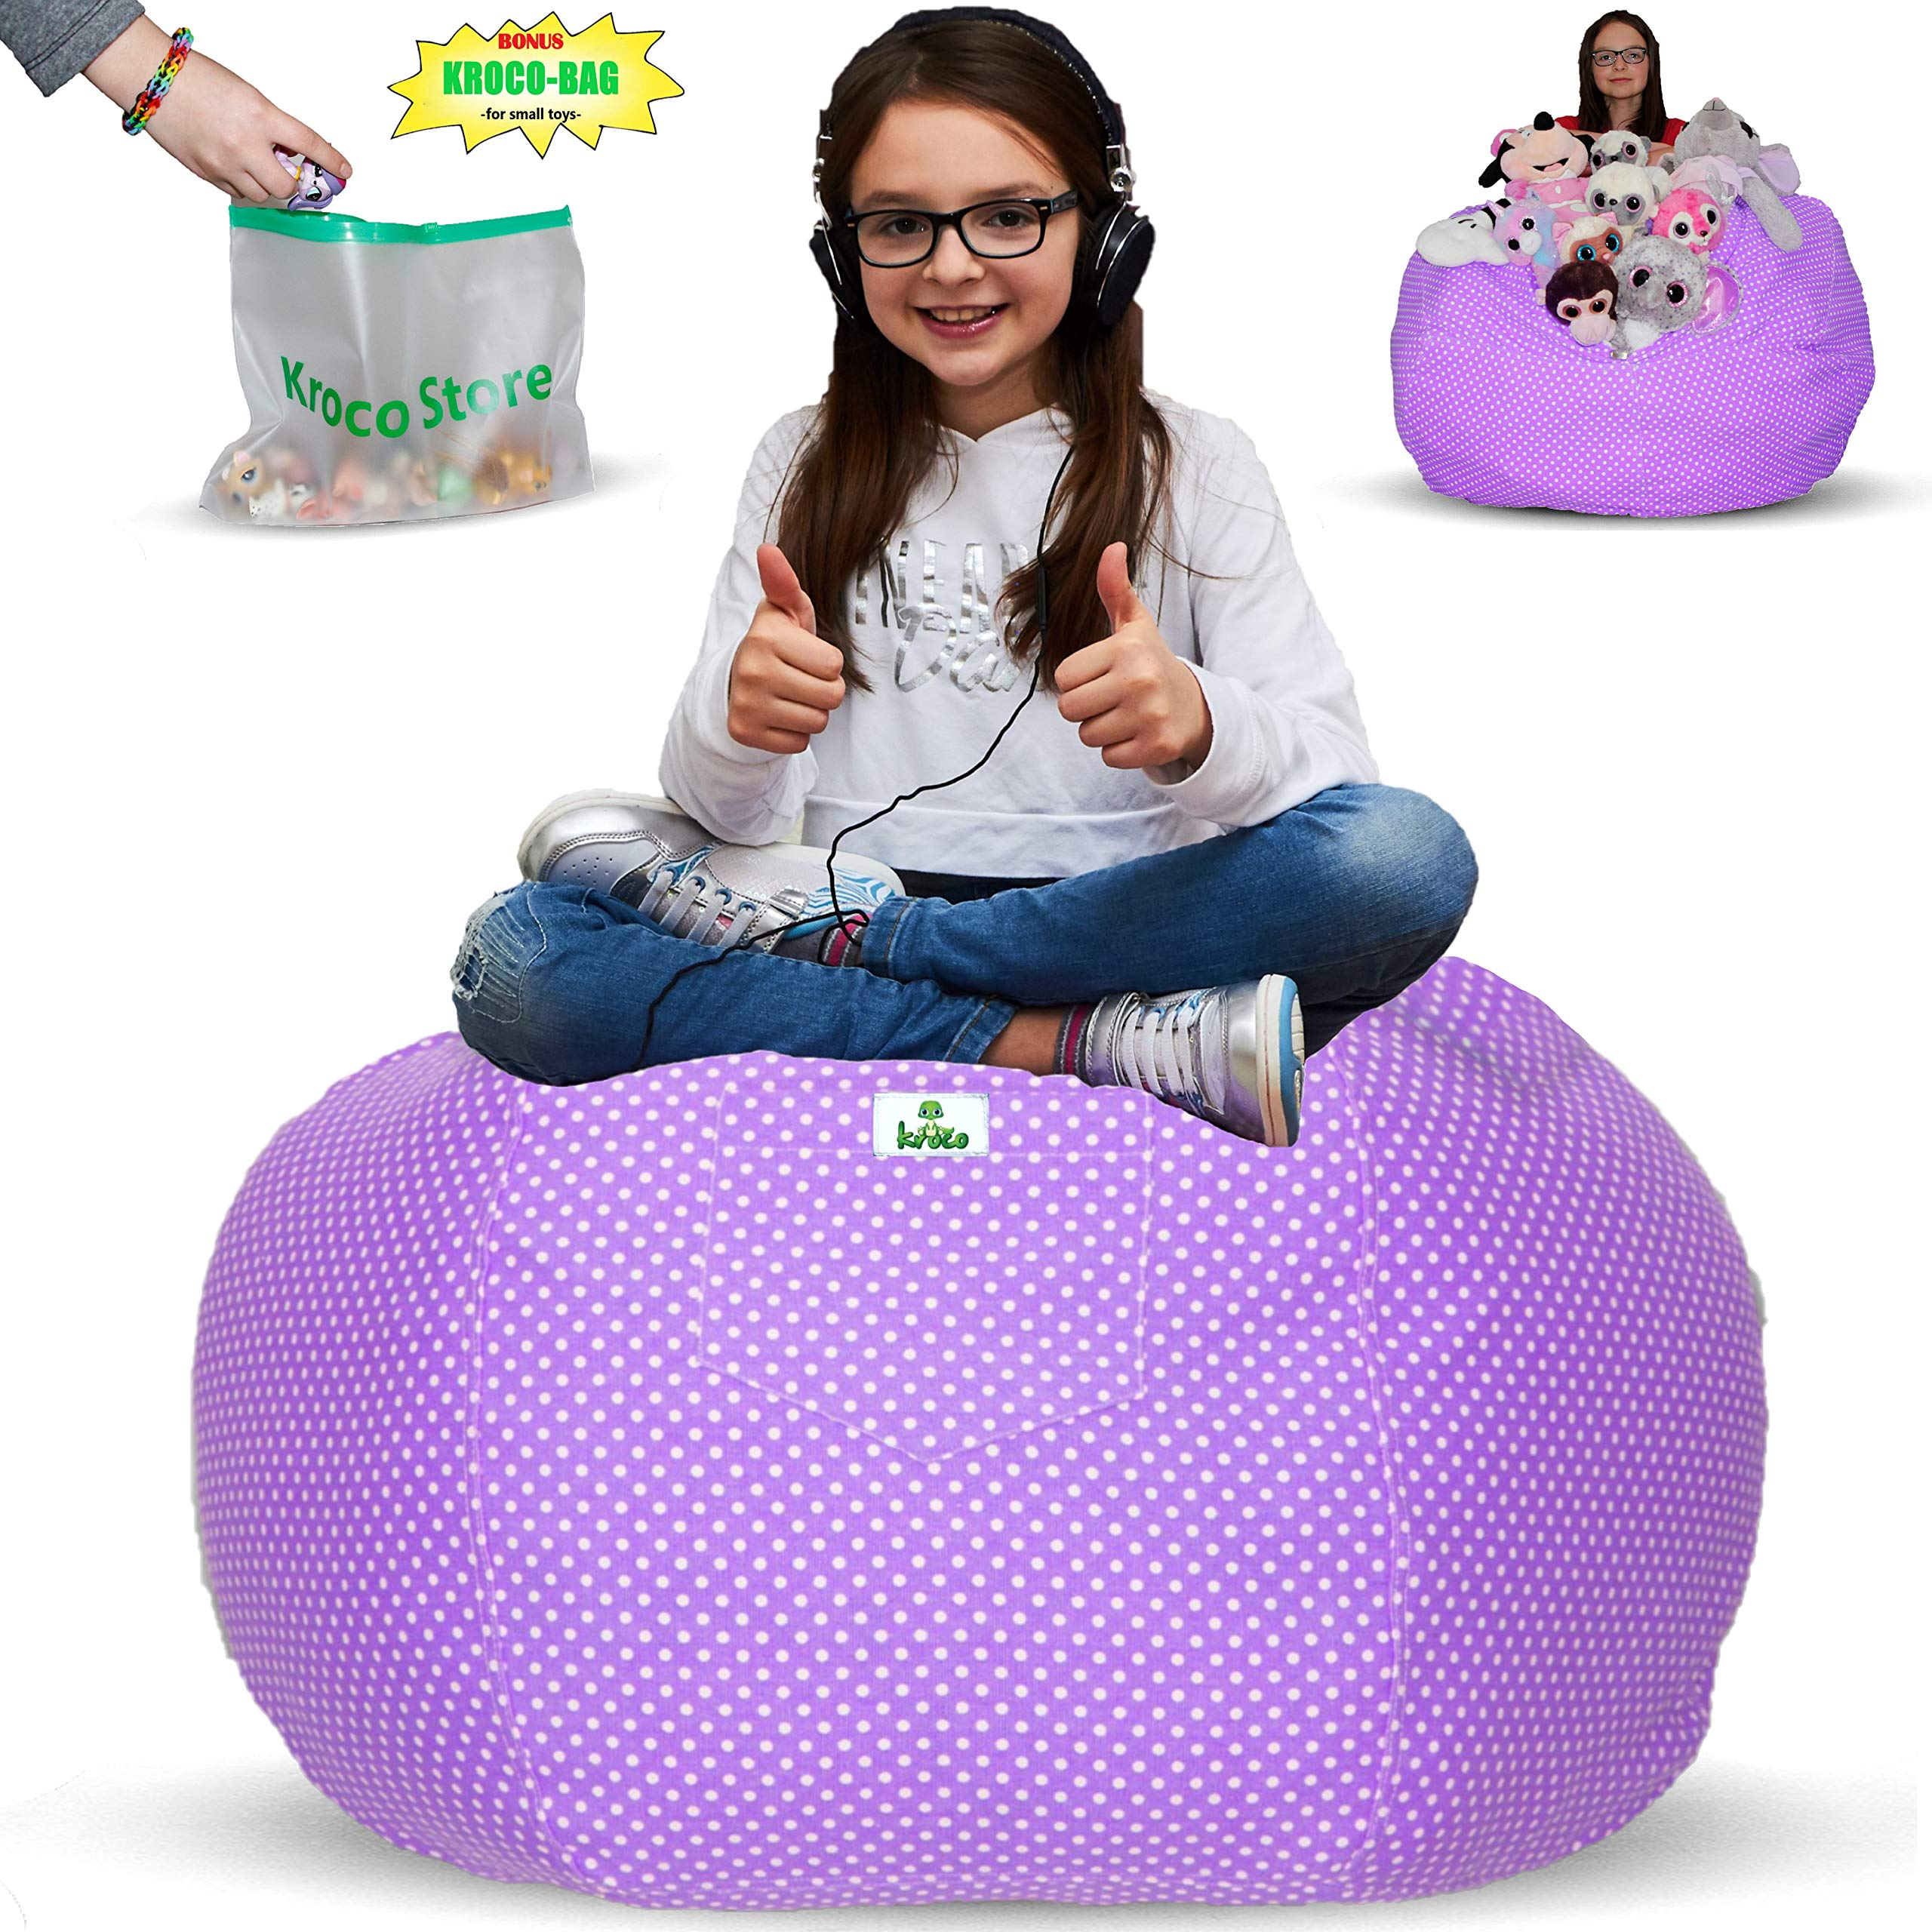 Kroco Stuffed Animal Storage Bean Bag Cover - Toy Storage Beanbag for Kids Room - Stuff Storage Bag - Stuffable Bean Bag - Replace Mesh Toy Hammock Net - Store Blankets/Pillows Too - 38´´ Purple by Kroco